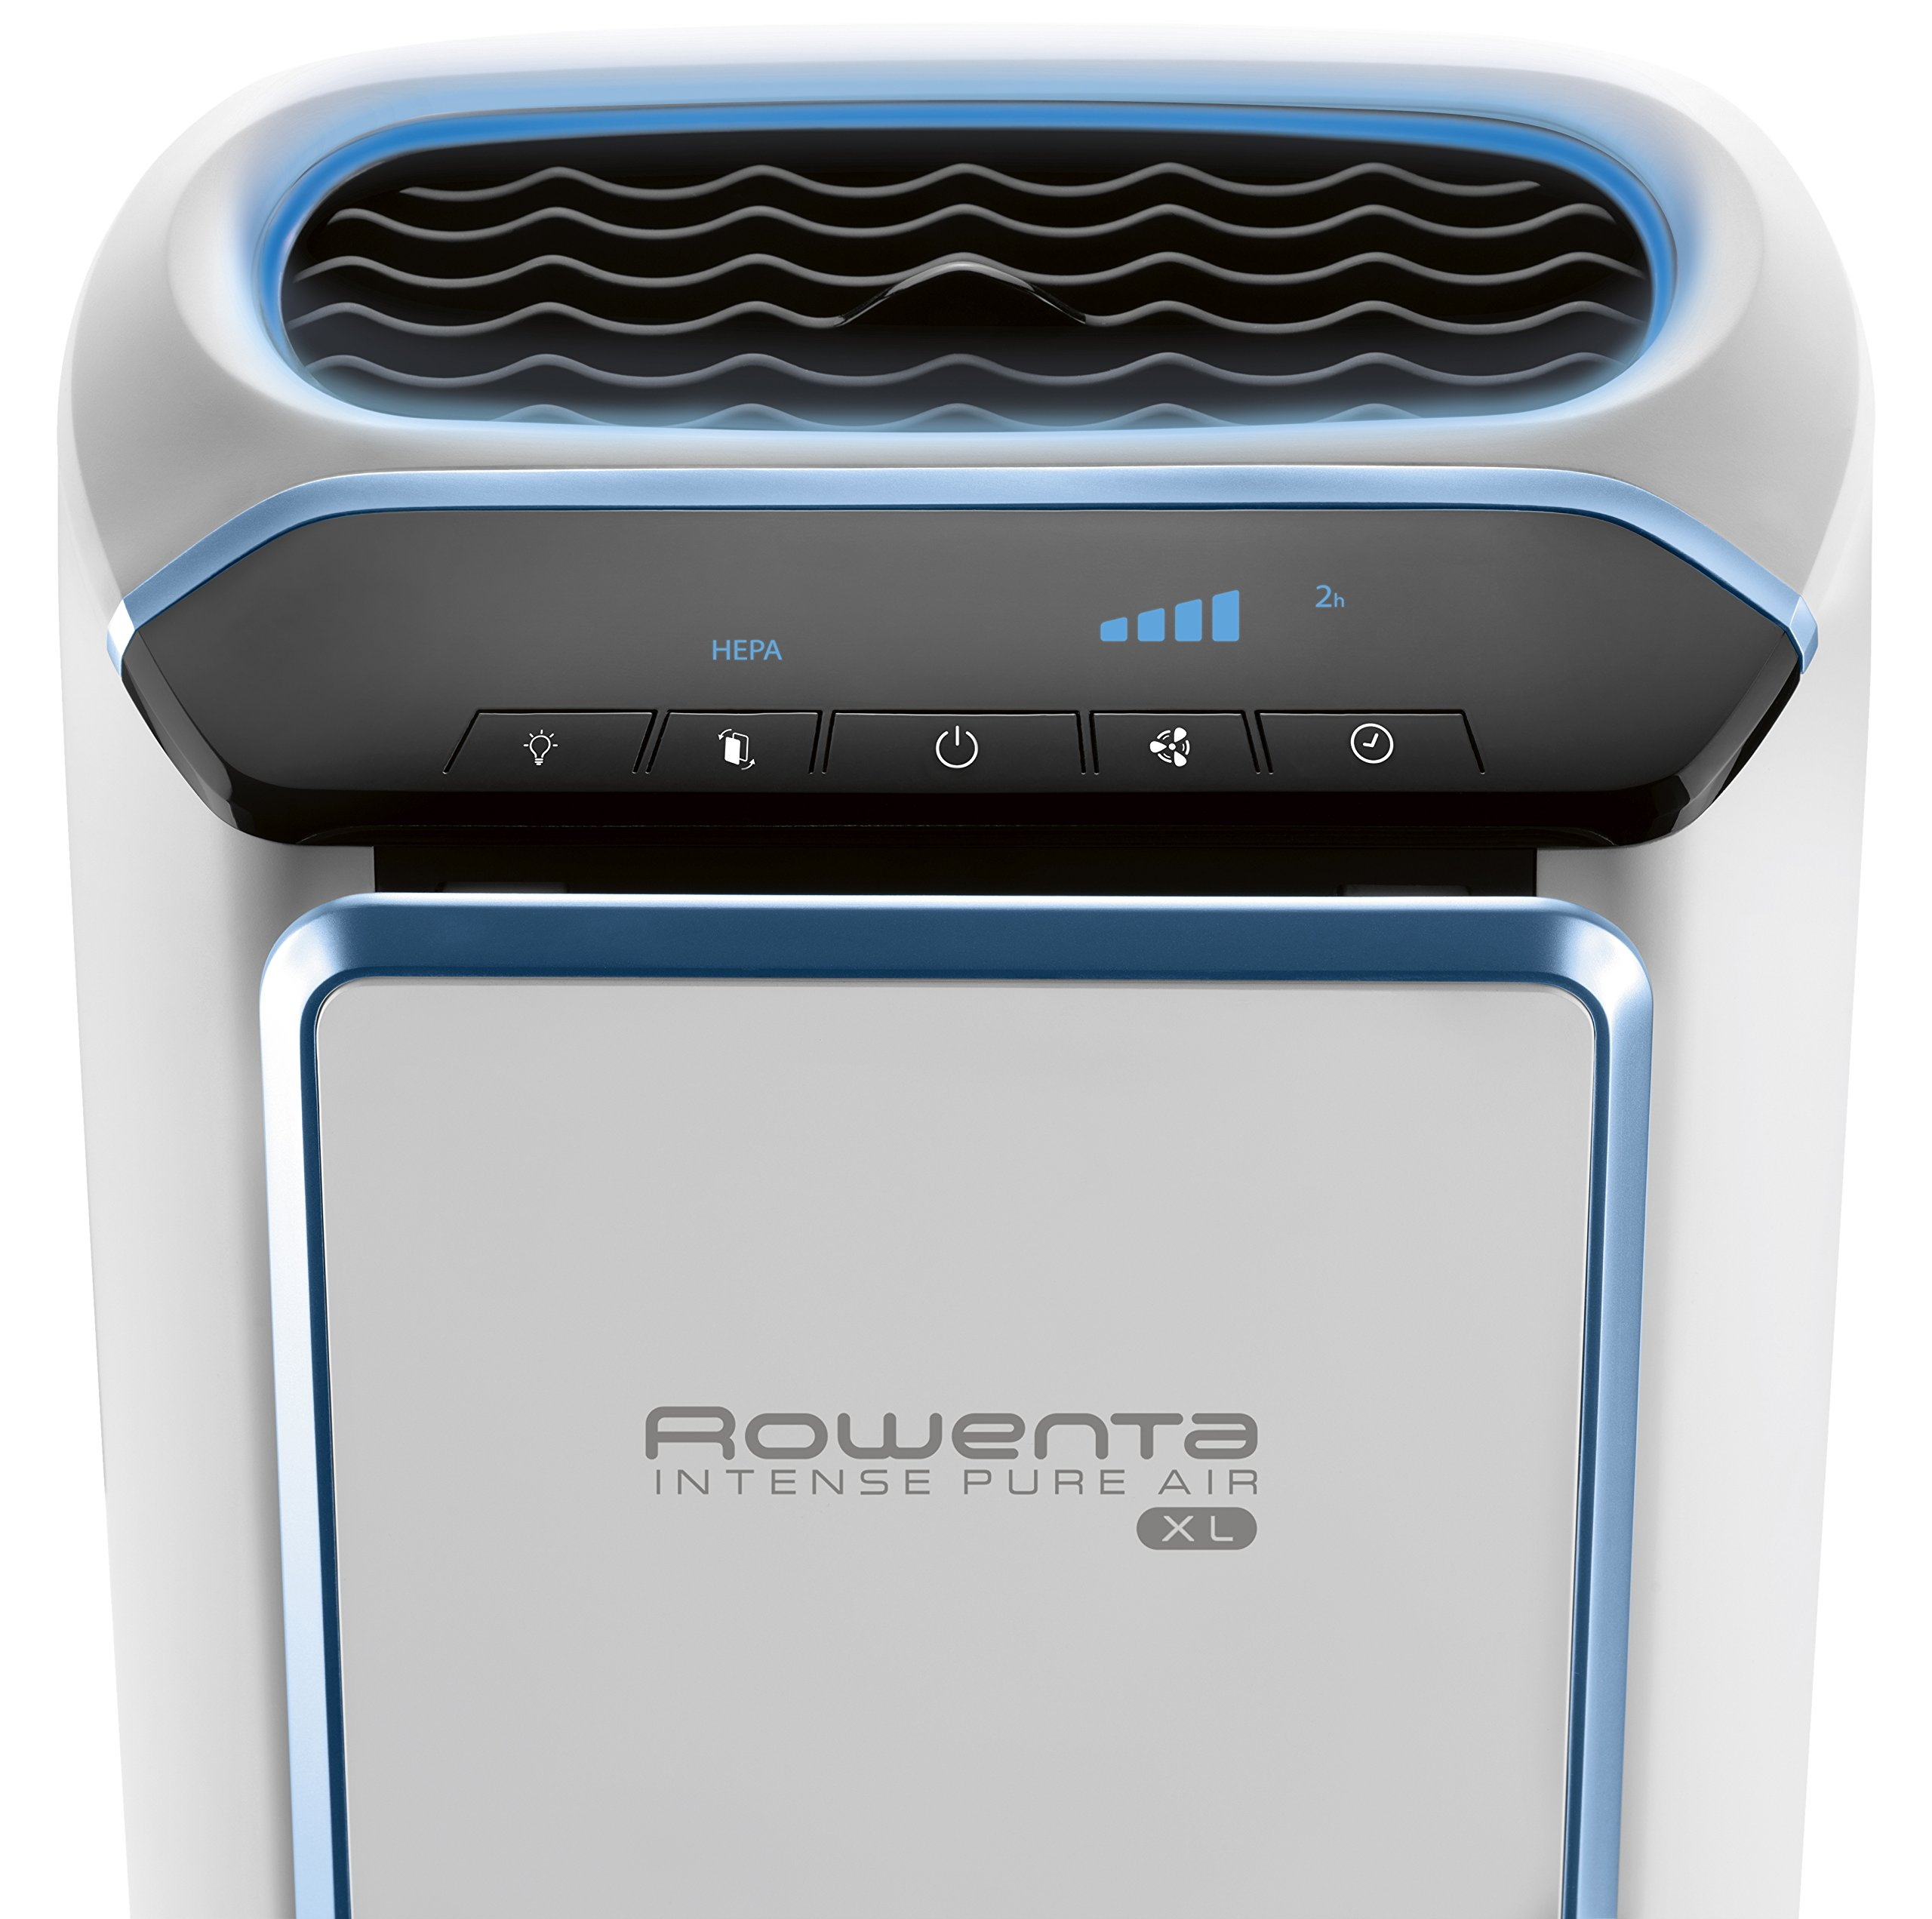 Rowenta PU6010 Intense Pure Air 800-Square Feet Air Purifier with 4-Filters Including HEPA Filter and Formaldehyde-Free Technology and Odor Eliminator, 29-Inch, White by Rowenta (Image #4)